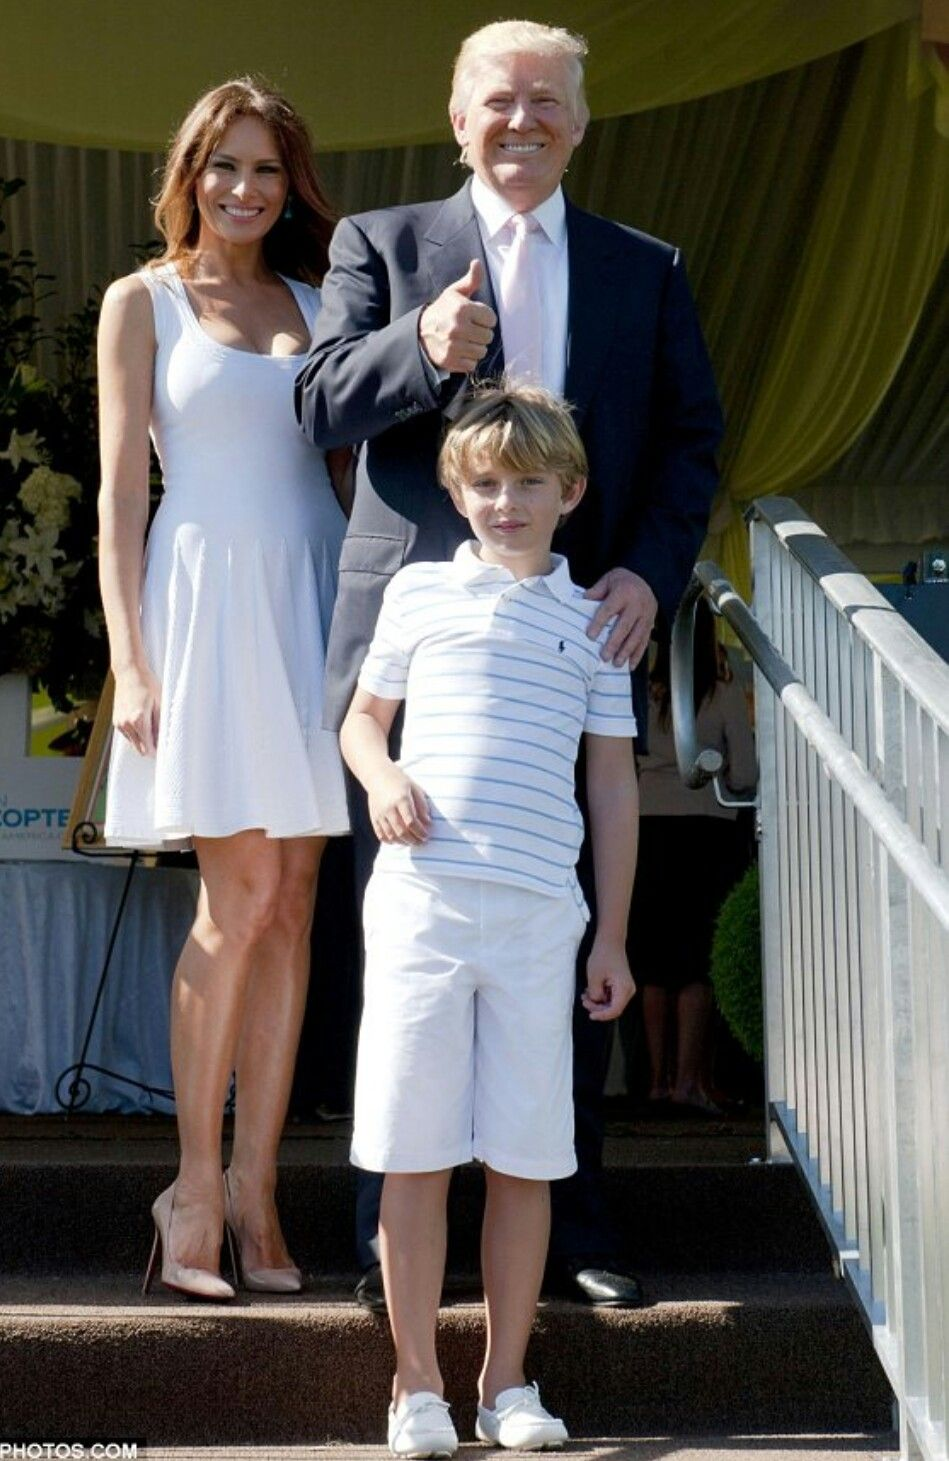 Donald And Family